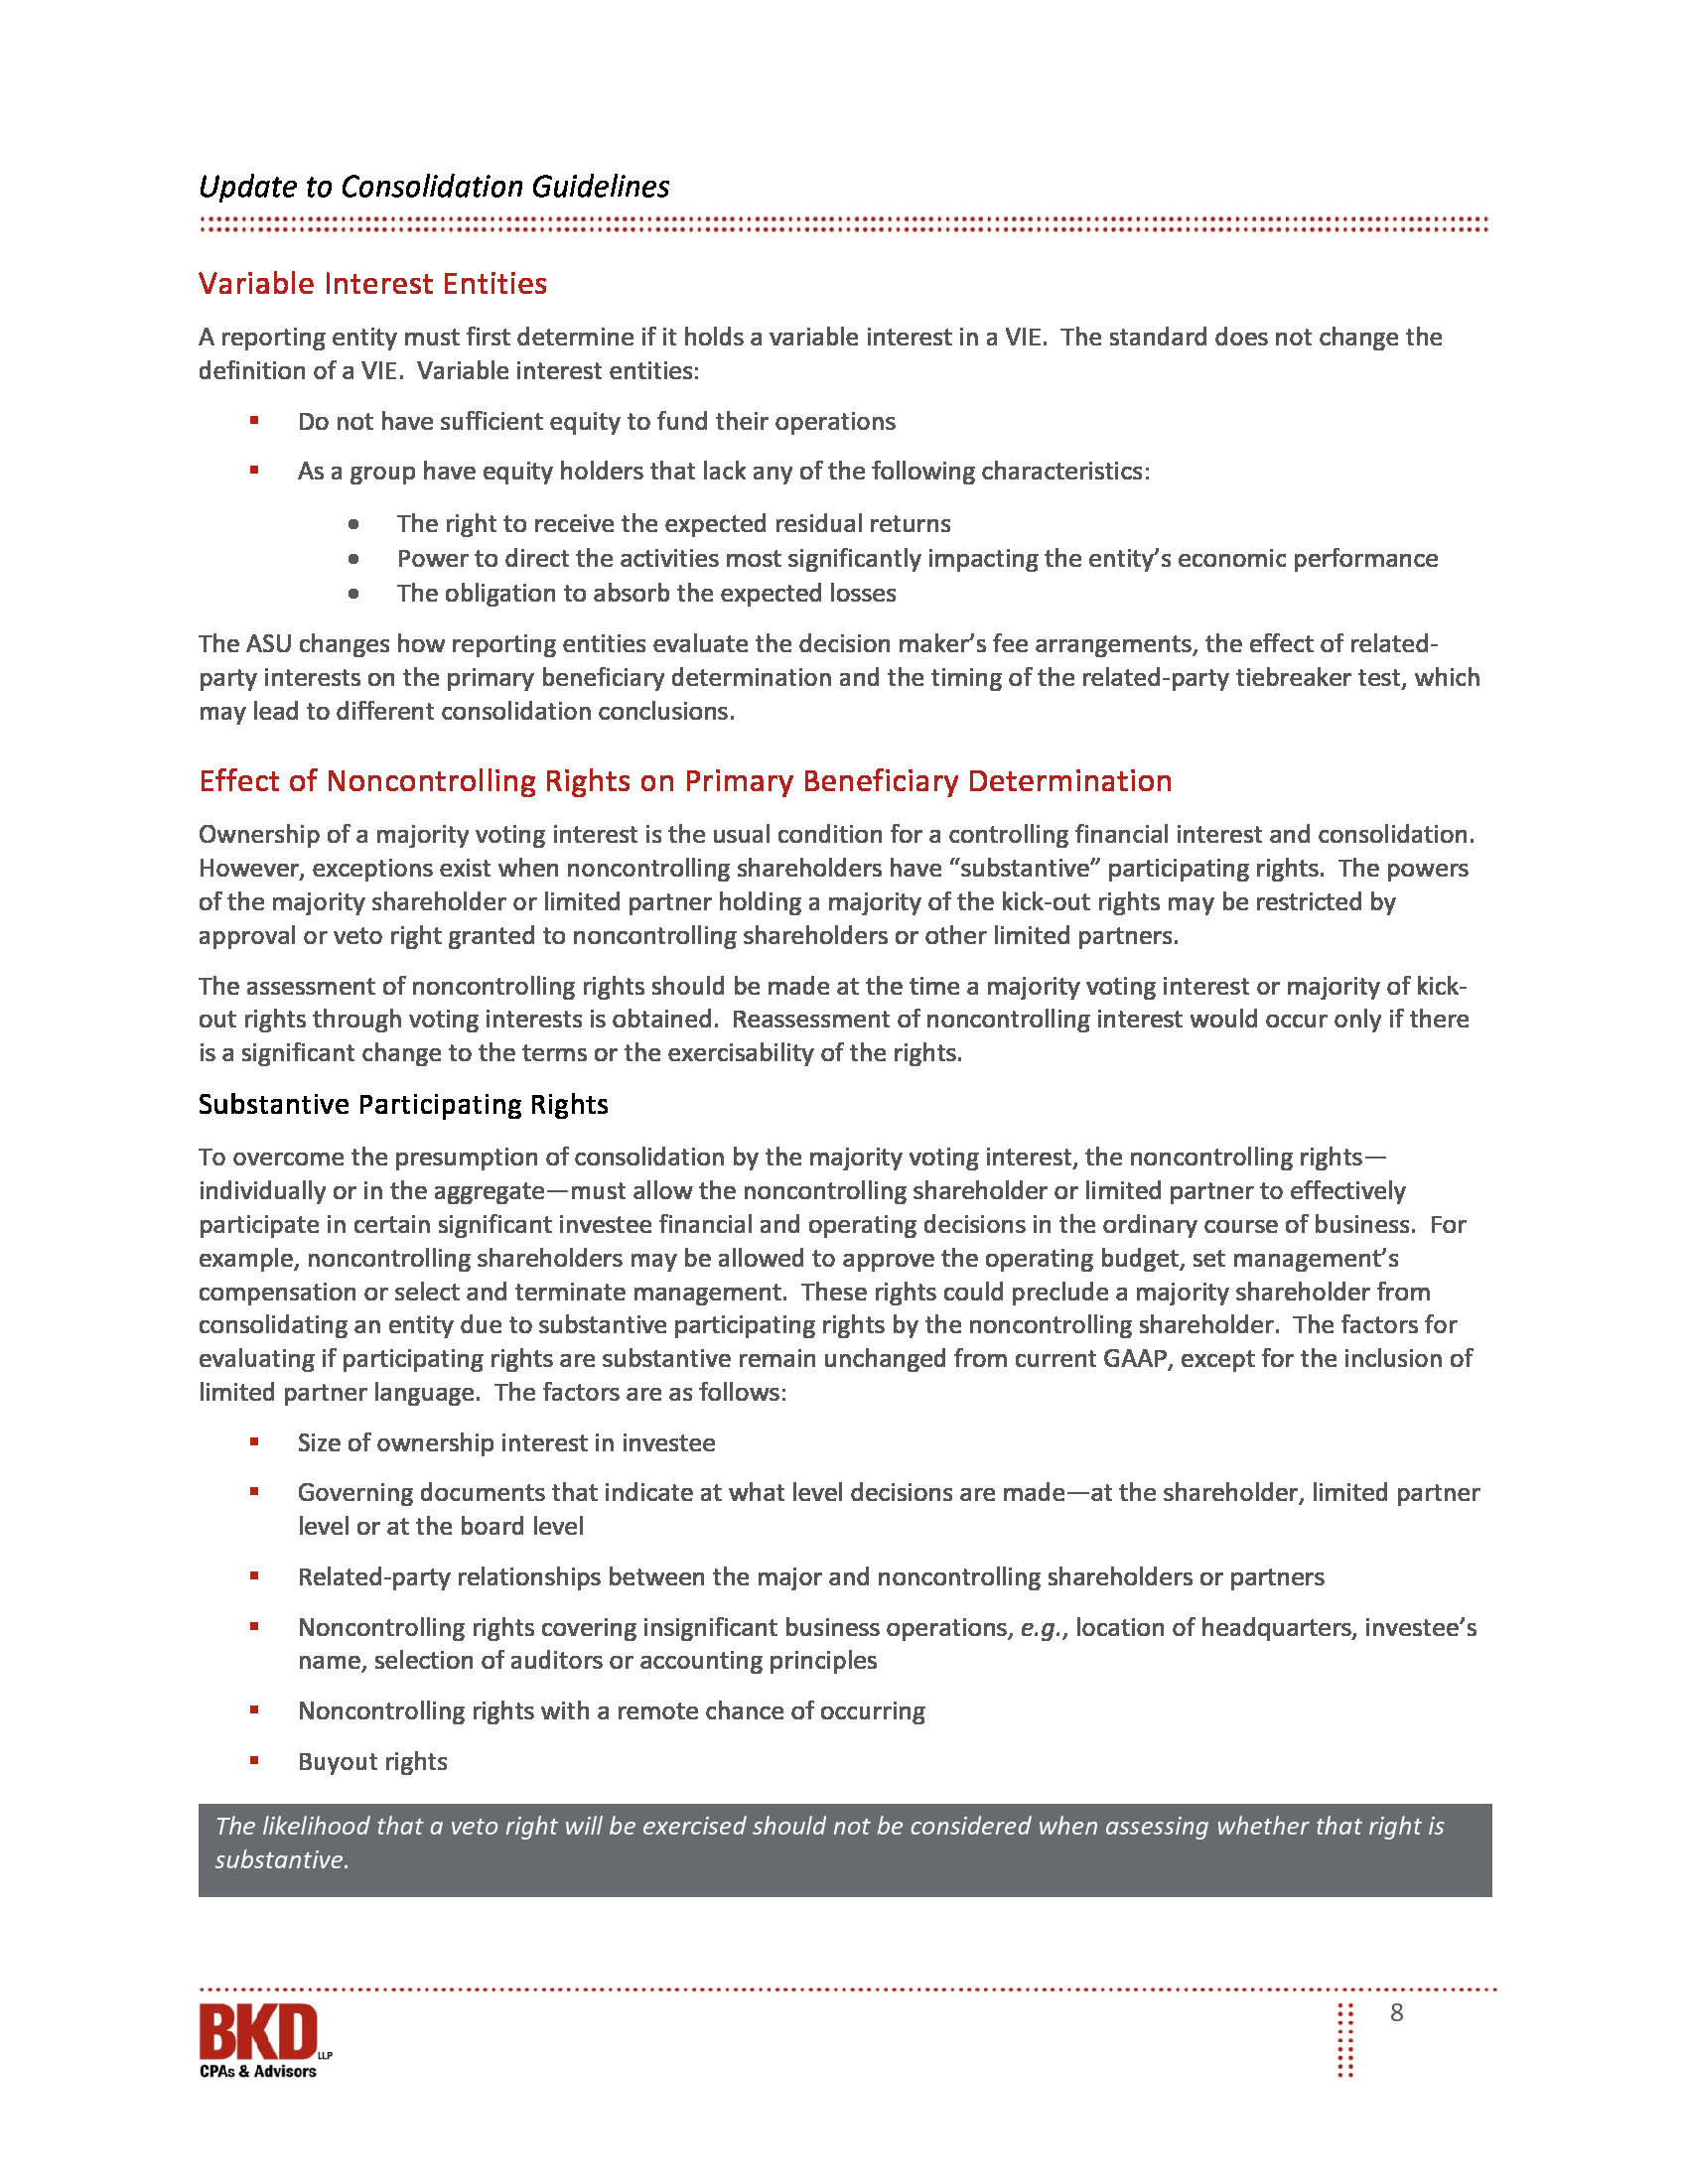 New guidelines issued by gaap for consolidating entities